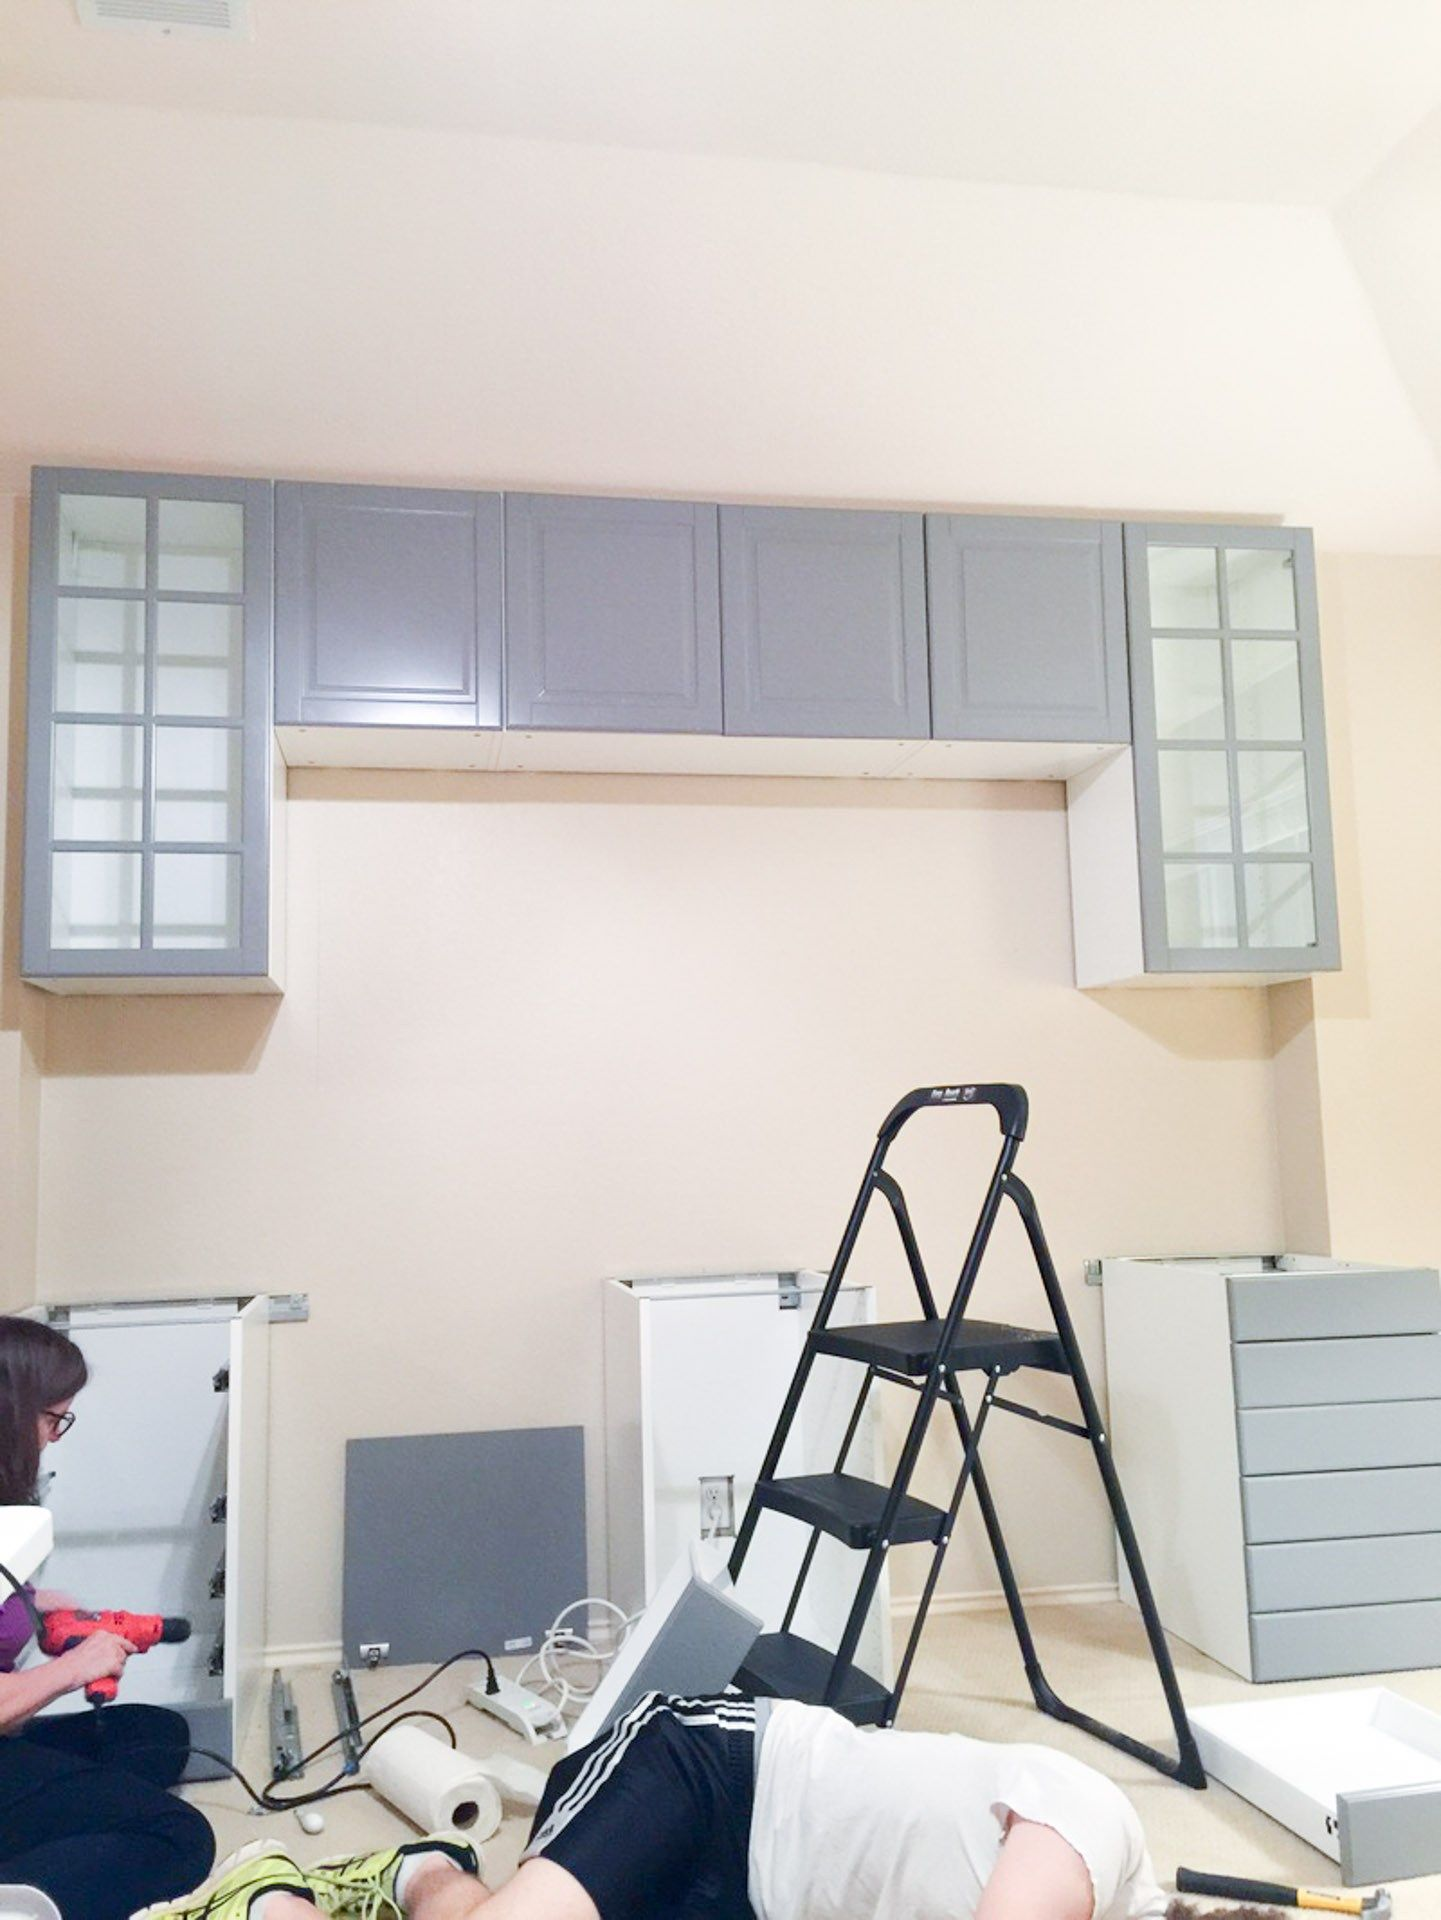 How To Make A Desk From Kitchen Cabinets Part One Diy Without Fear In 2020 Diy Bedroom Storage Ikea Cabinets Installing Cabinets